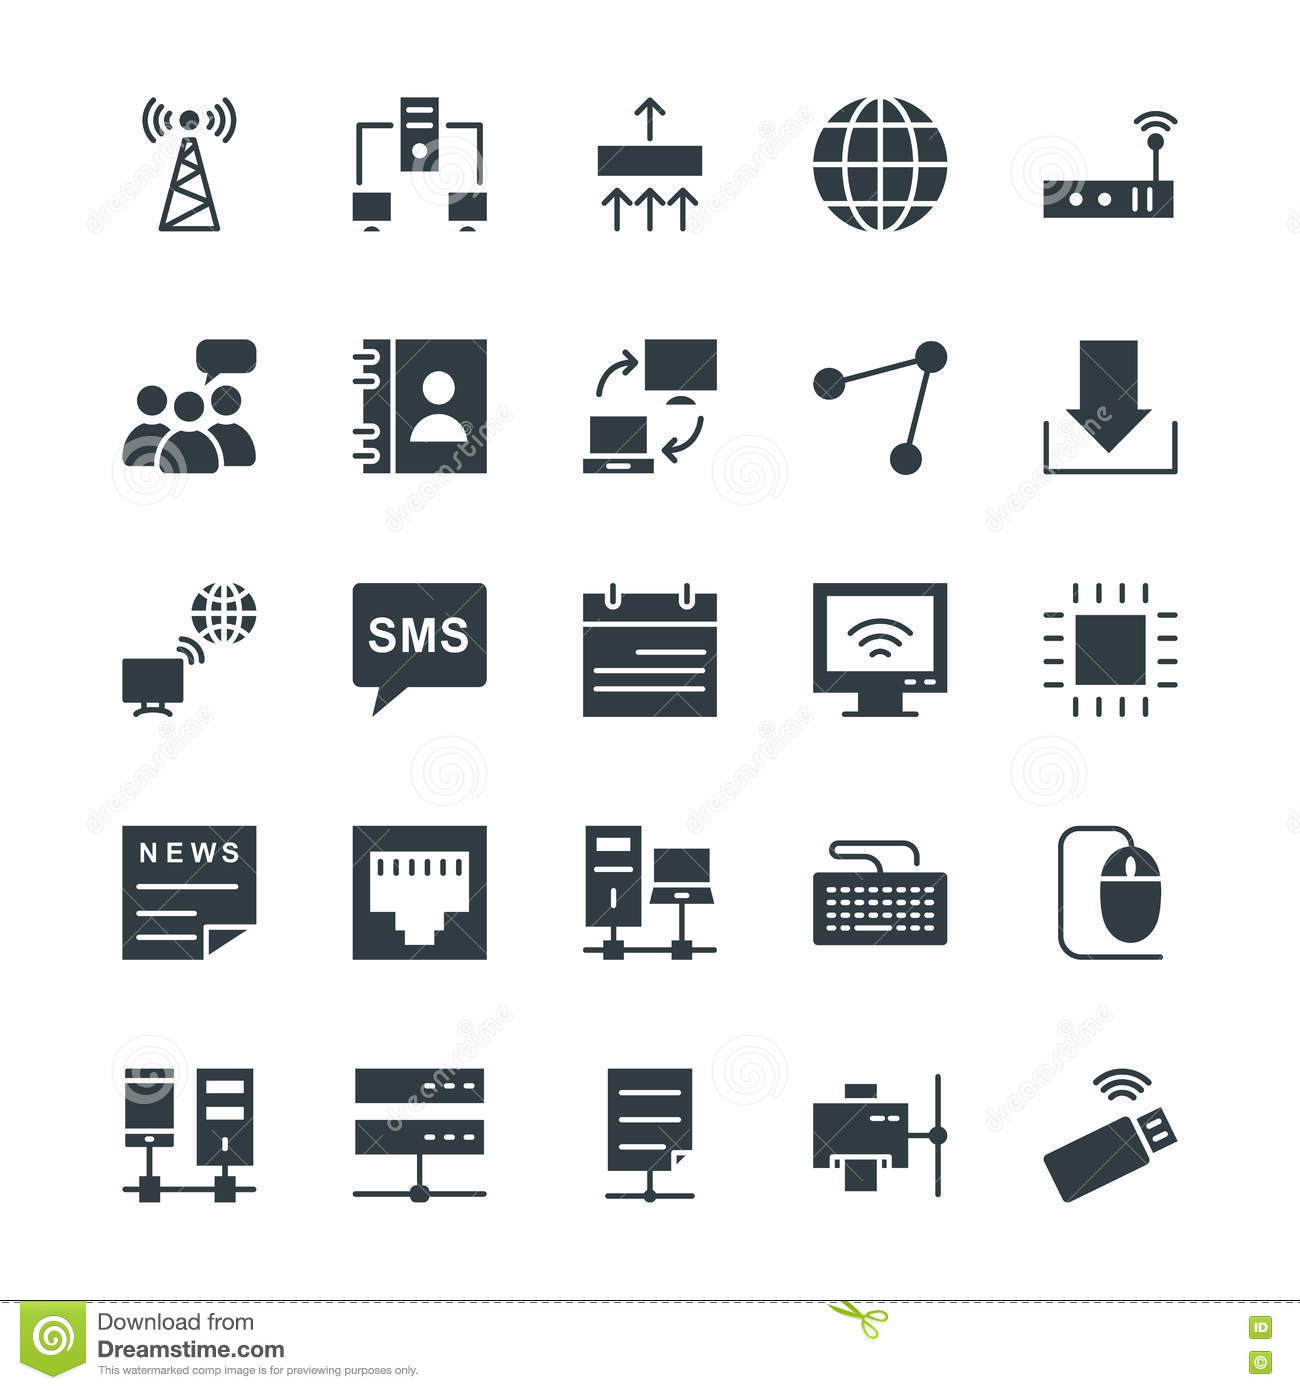 Networking Cool Vector Icons 1 Stock Illustration